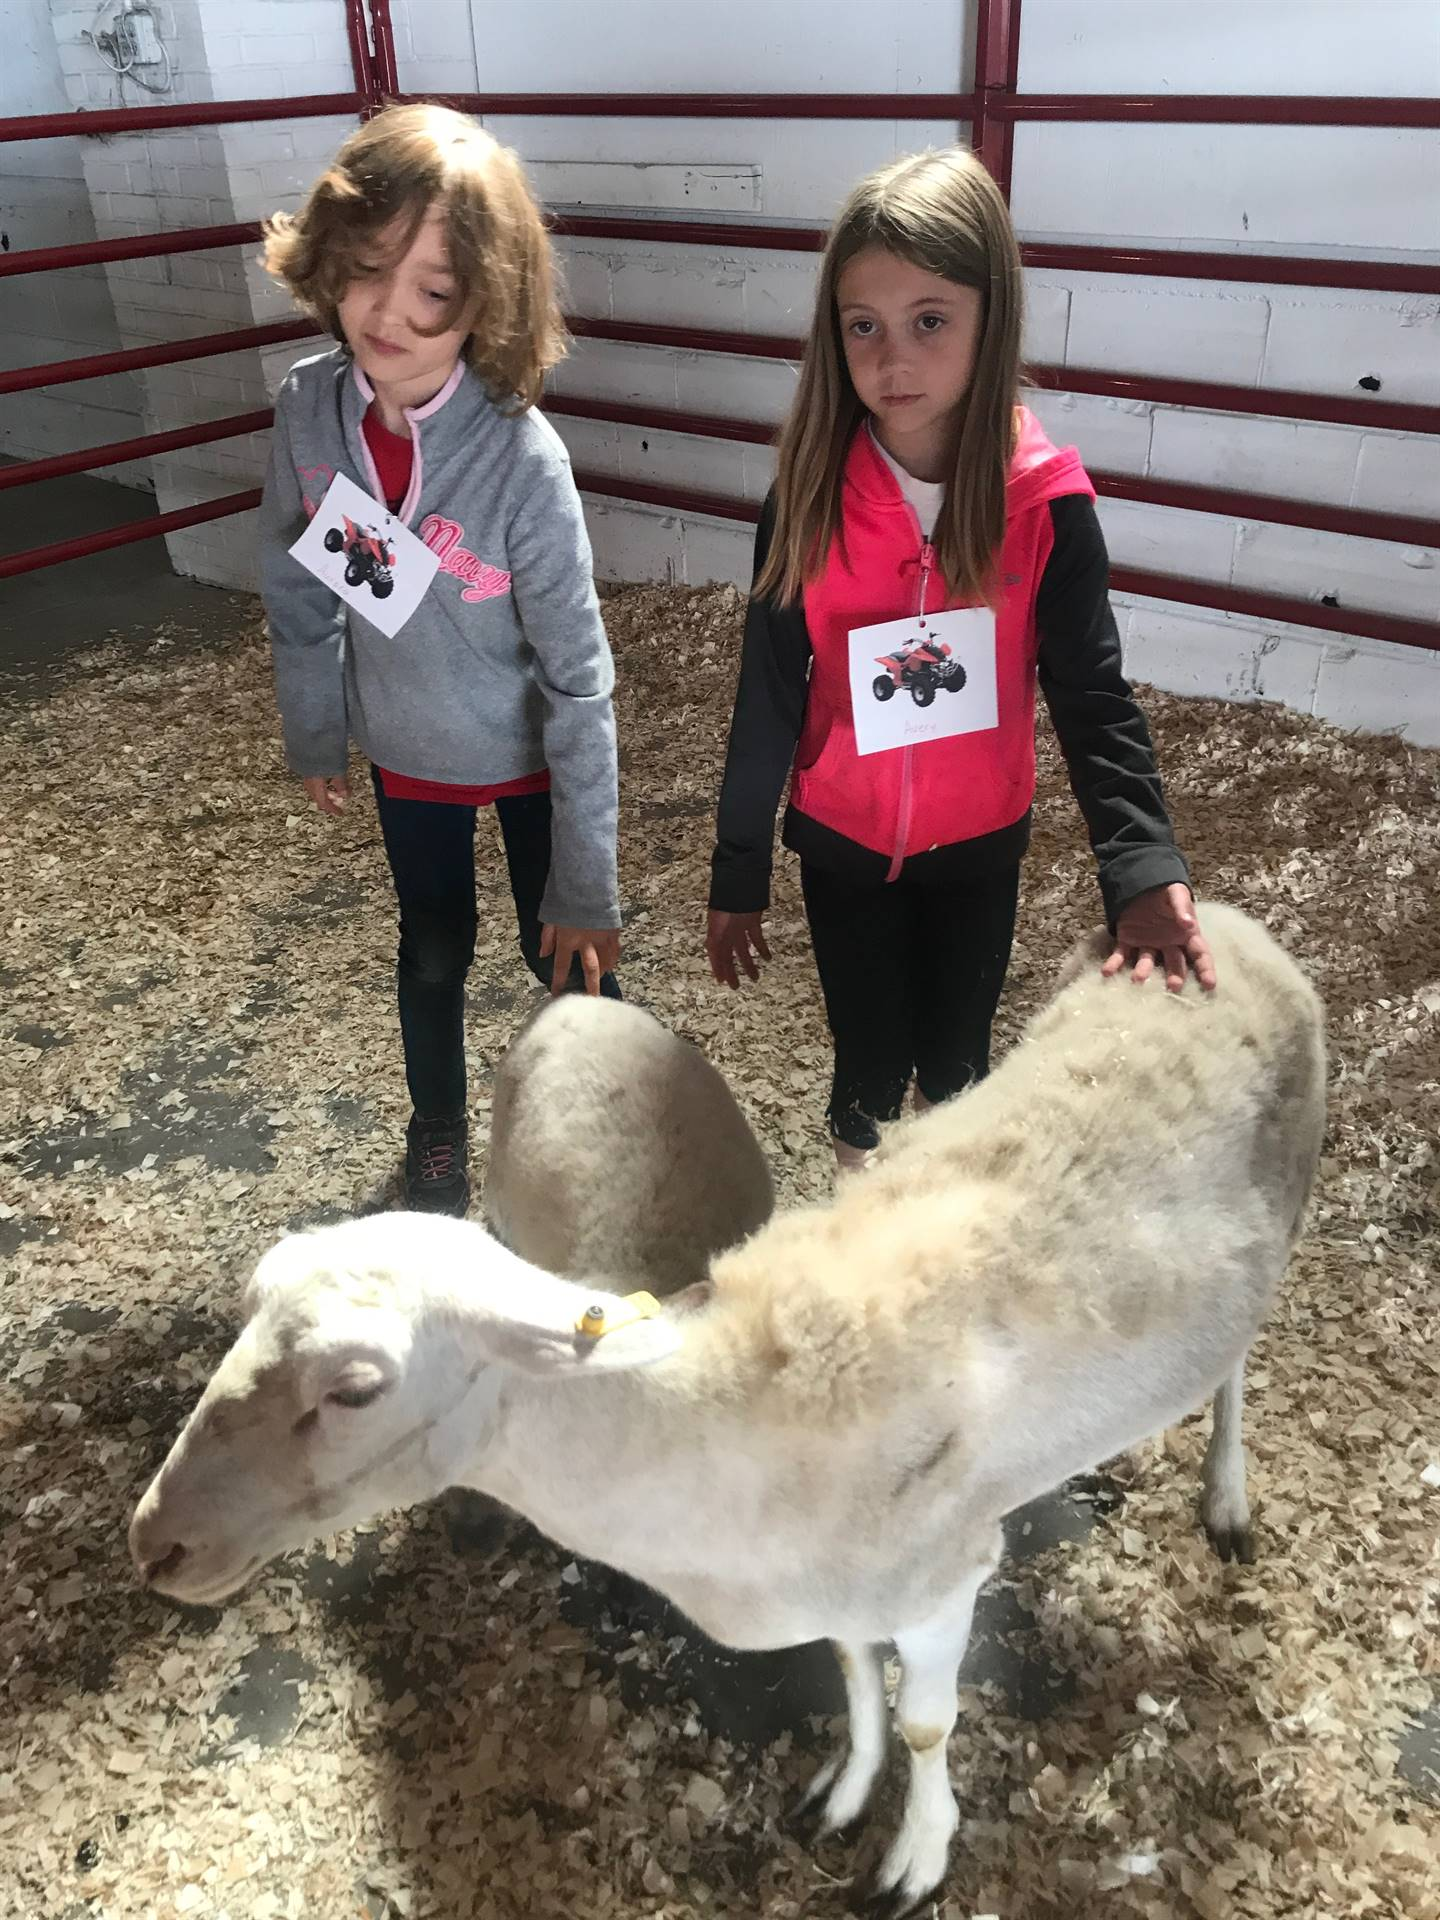 Two elementary students petting a goat